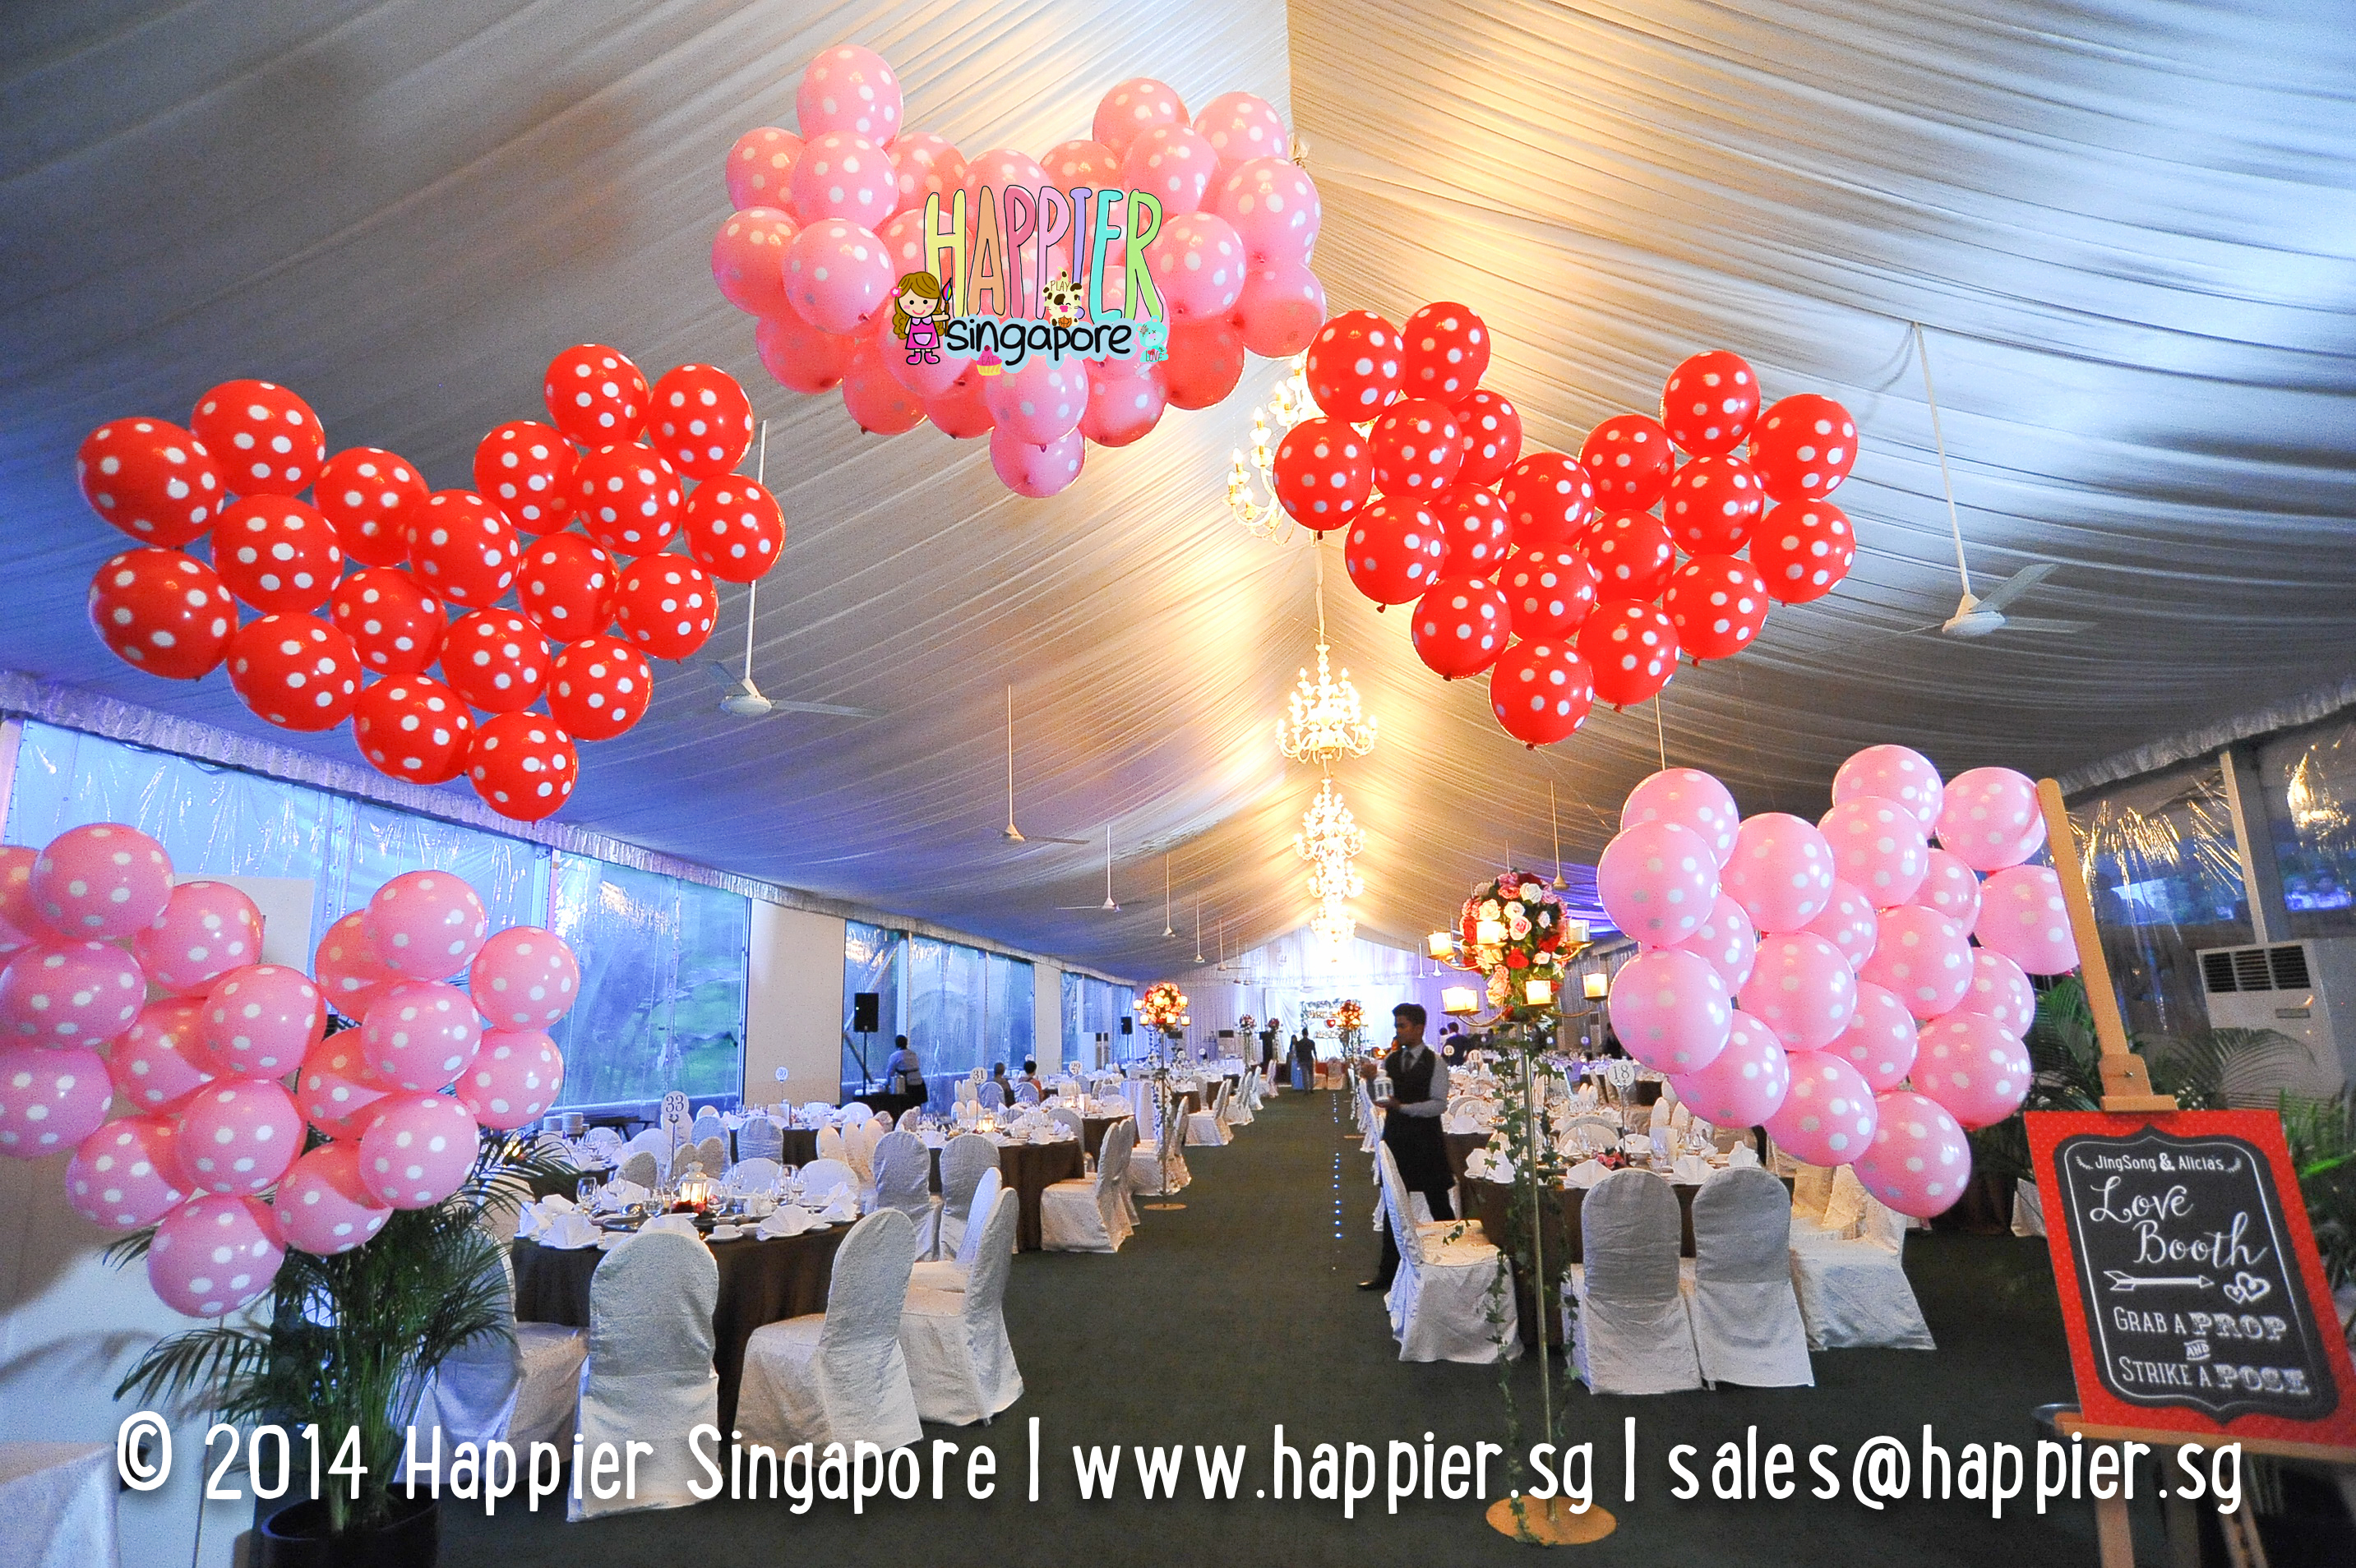 Wedding balloon decorations heart balloon arch happier singaporeg wedding balloon decorations heart balloon arch happier singapore junglespirit Images